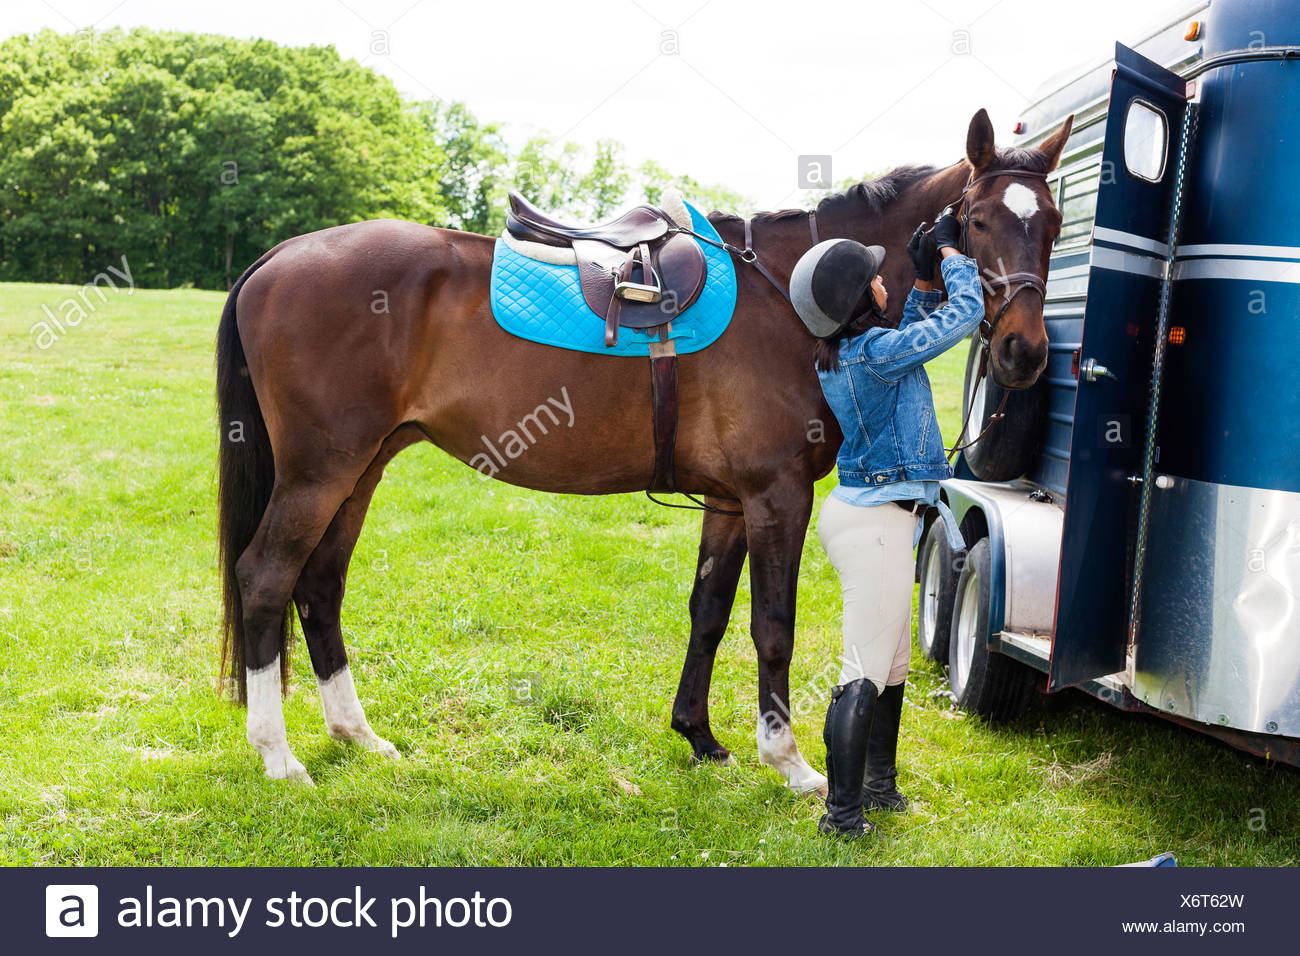 Horse rider putting on horse's bridle - Stock Image